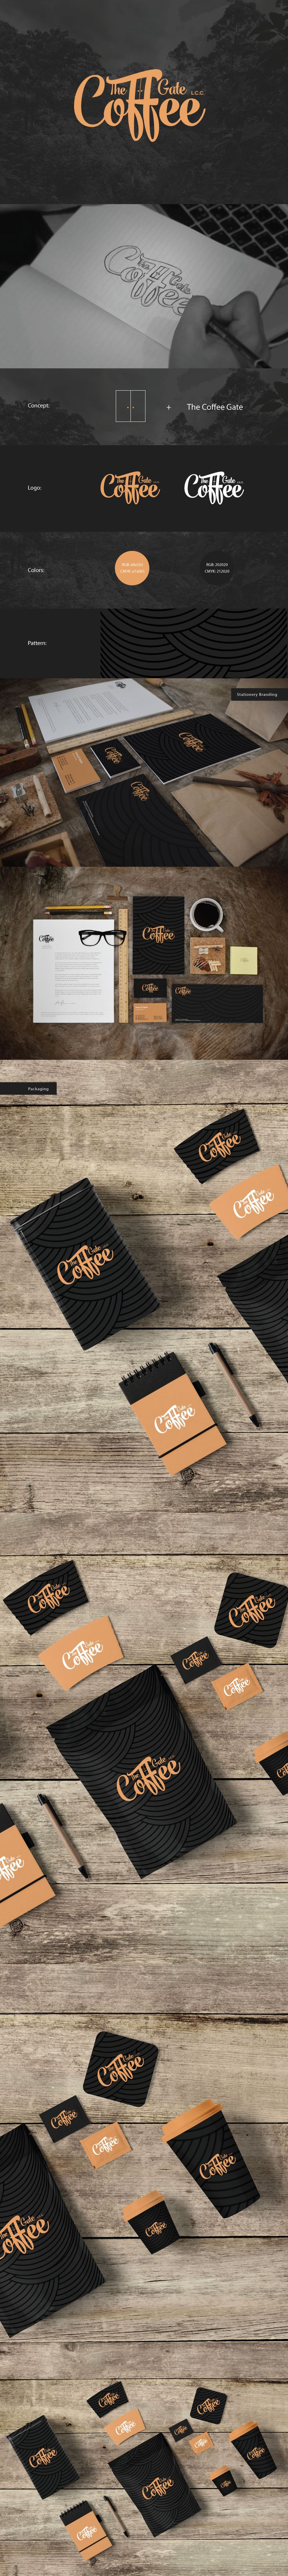 The Coffee Gate | Brand Identity by Nour Alsaleh